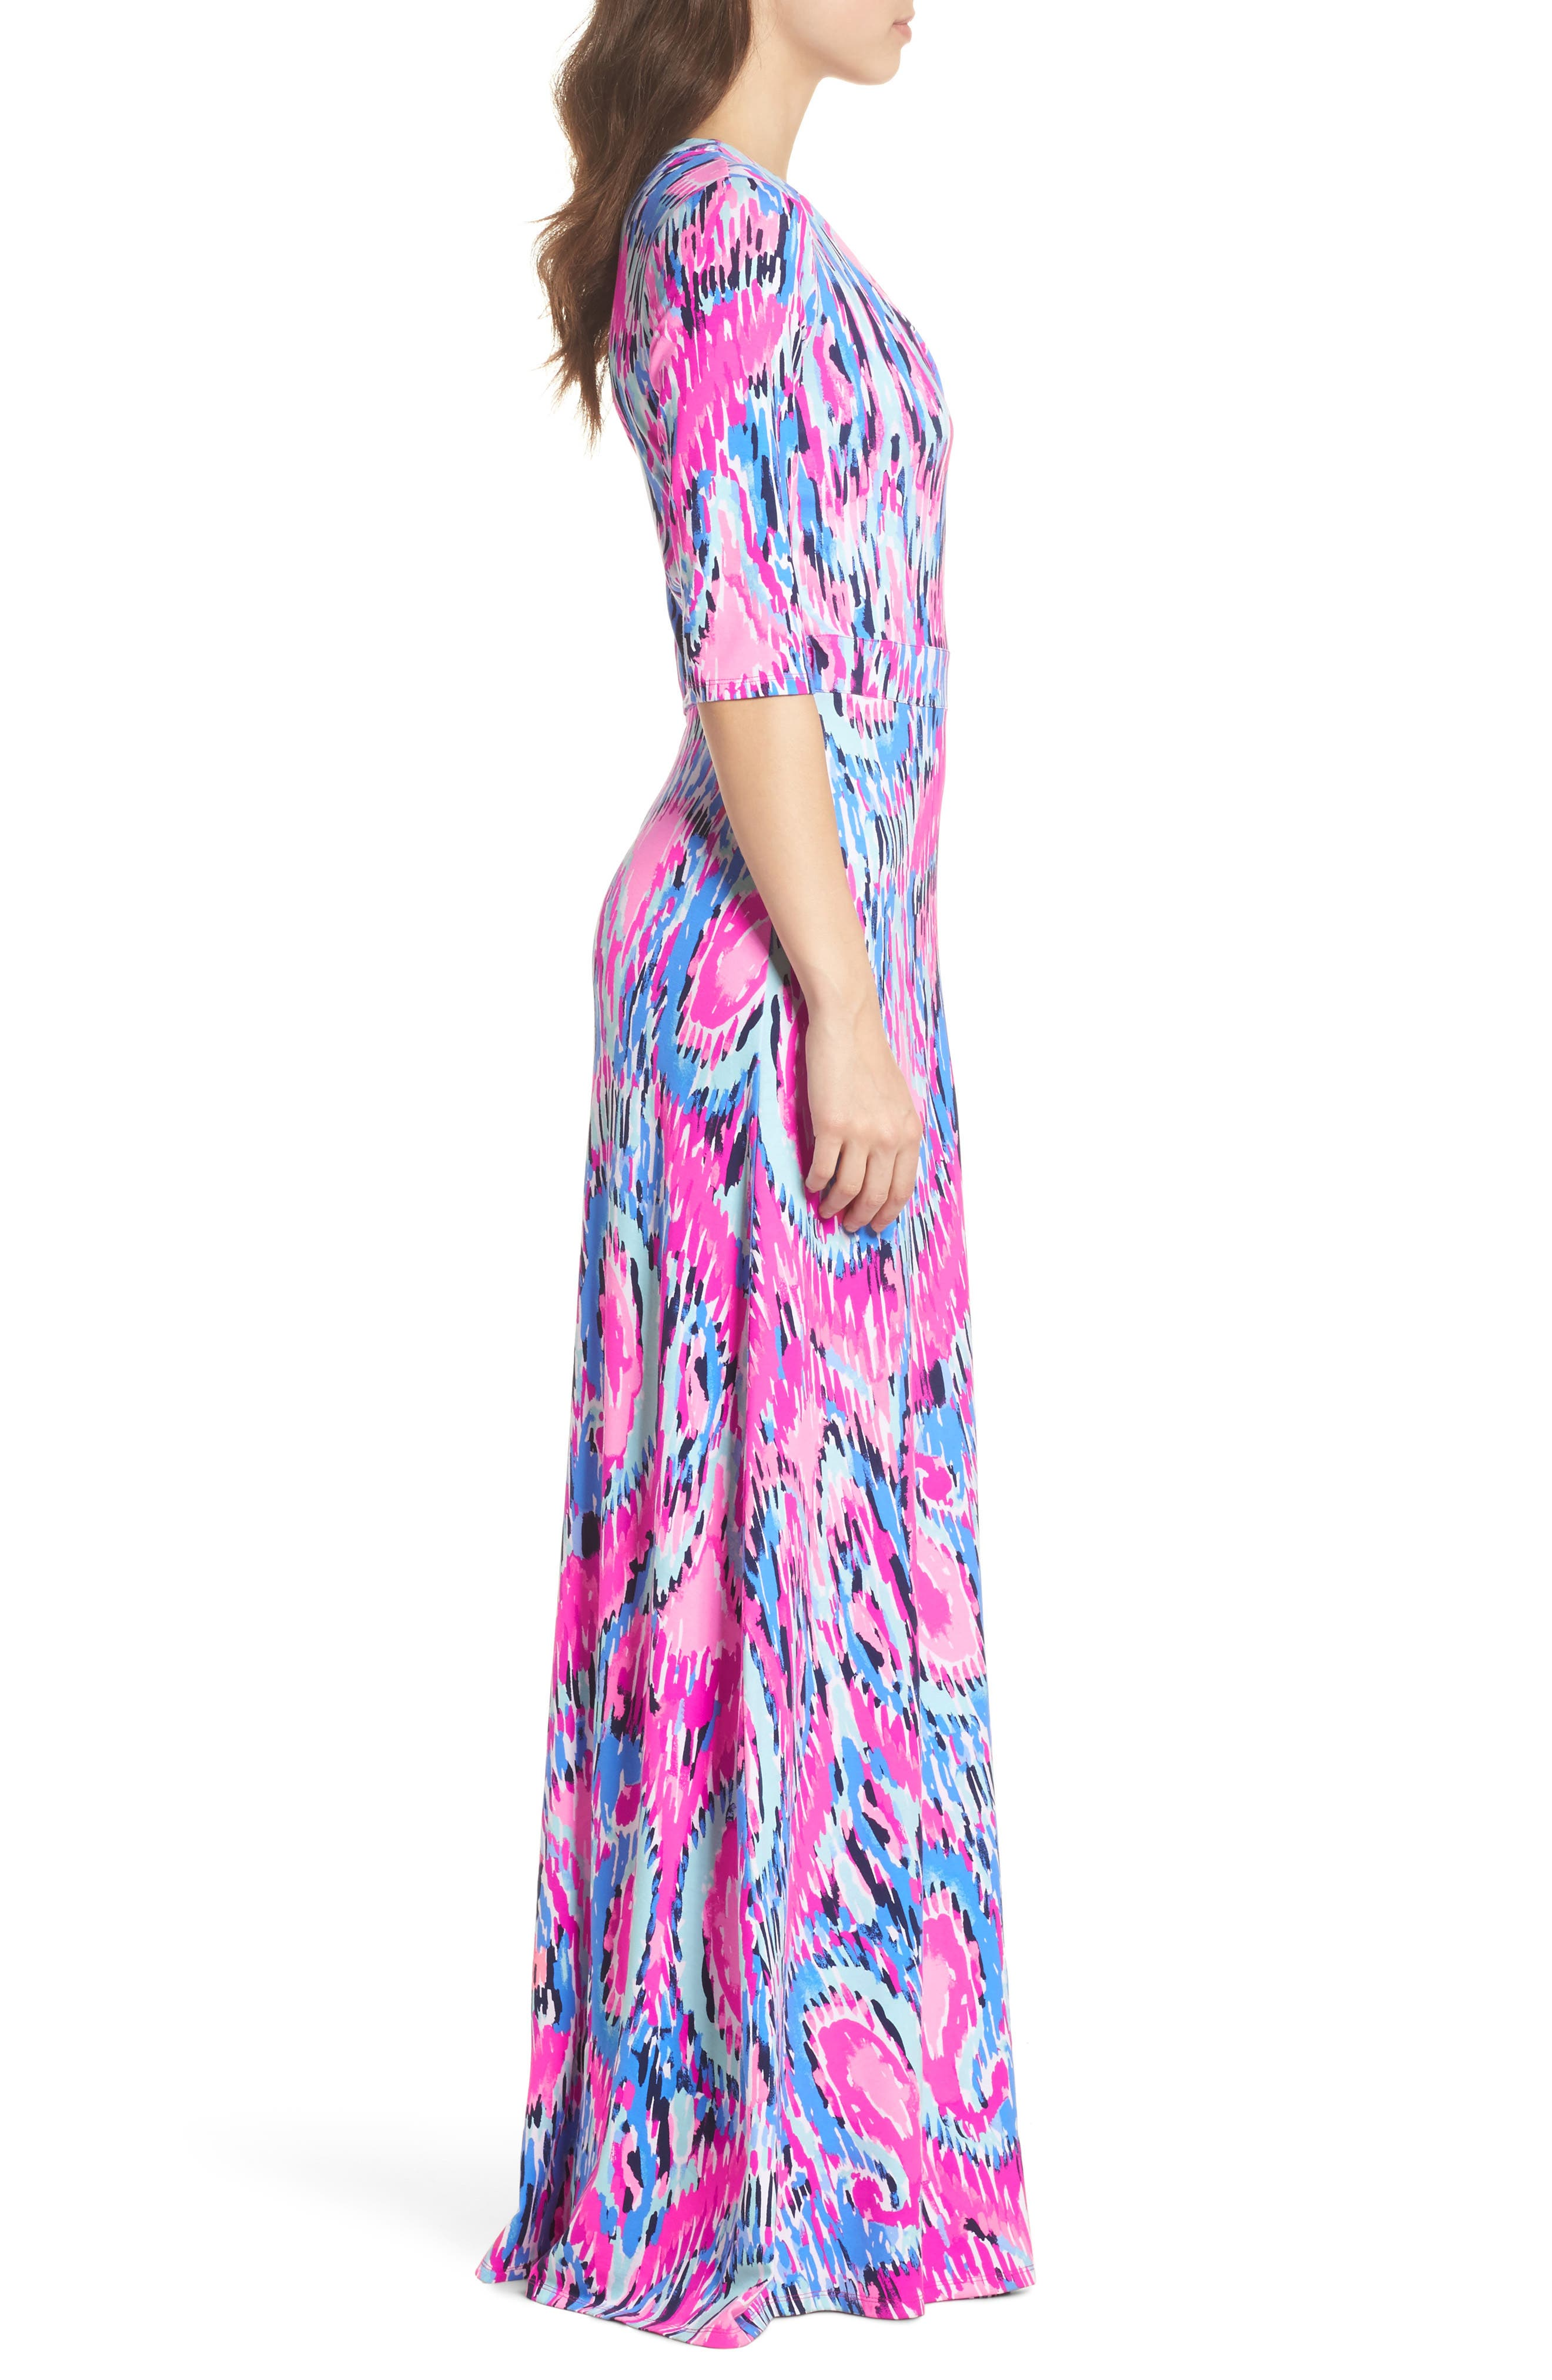 Marvista Wrap Maxi Dress,                             Alternate thumbnail 3, color,                             650